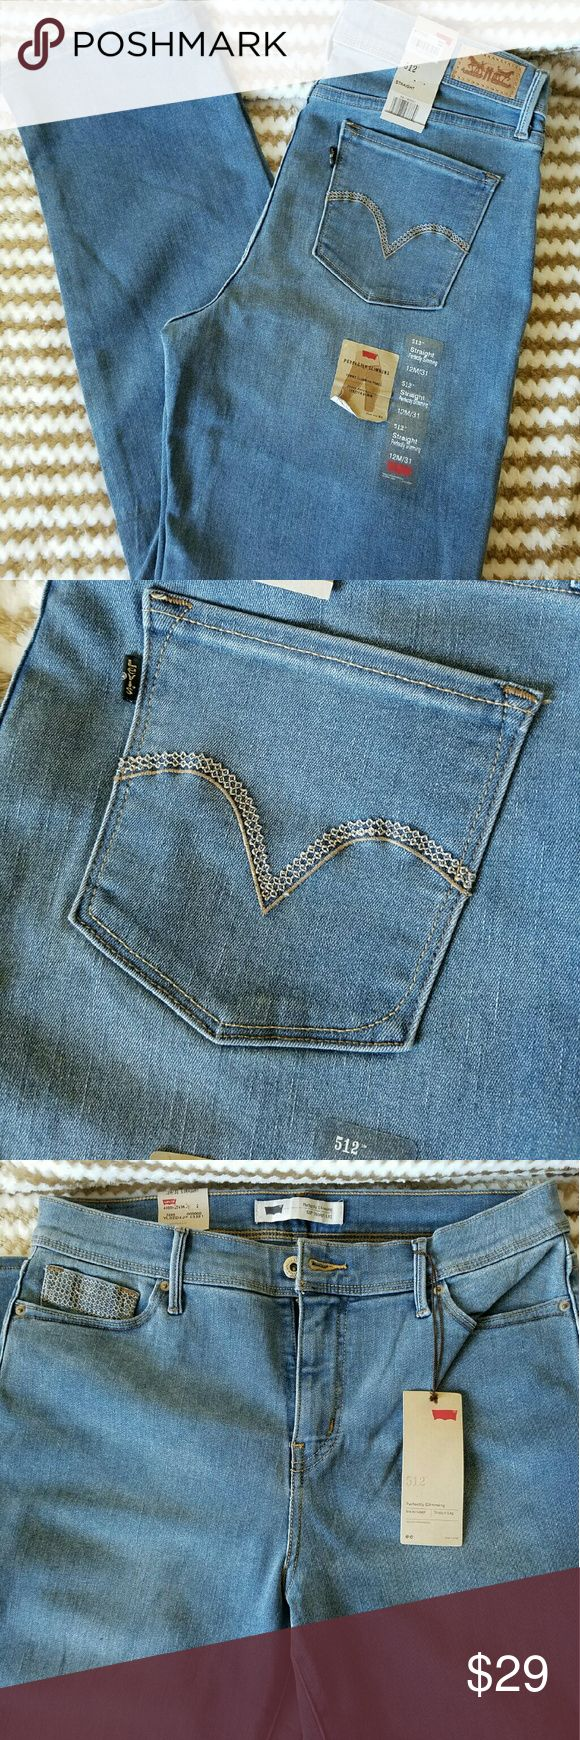 Levis 512 Straight Perfectly Slimming Jeans 12M/31 Levi's 512 straight perfectly slimming jeans in a light wash color. Tummy slimming panel, shape supporting stretch denim. Levi's Jeans Straight Leg